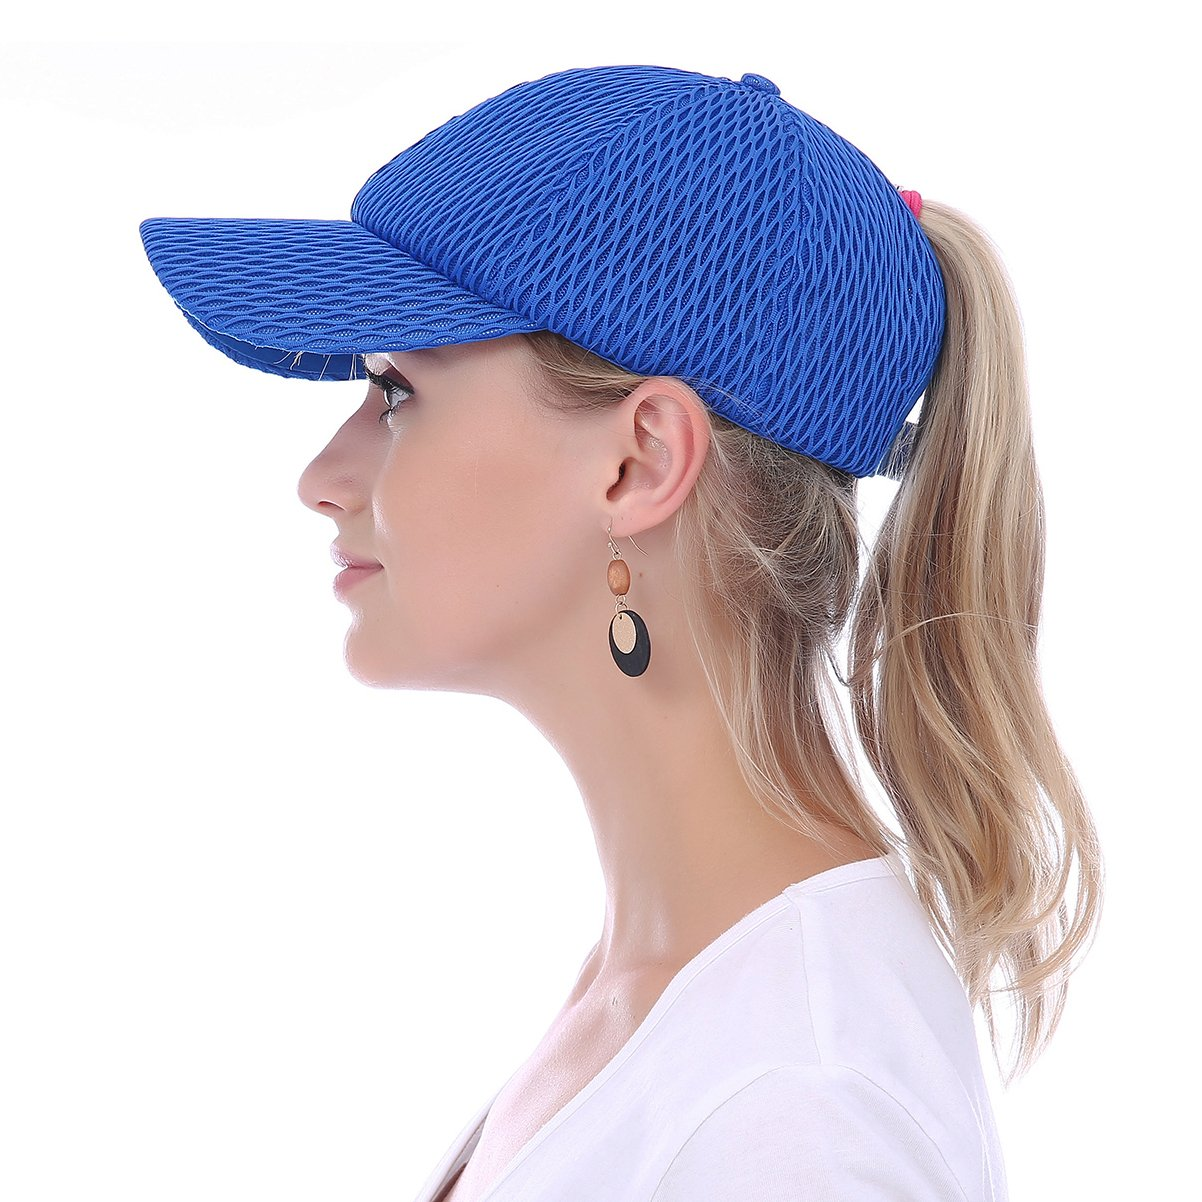 JAKY Global Women Ponytail Baseball Cap Messy Bun Adjustable Mesh Trucker  Sport Hats(Blue) at Amazon Women s Clothing store  8035d187fe9